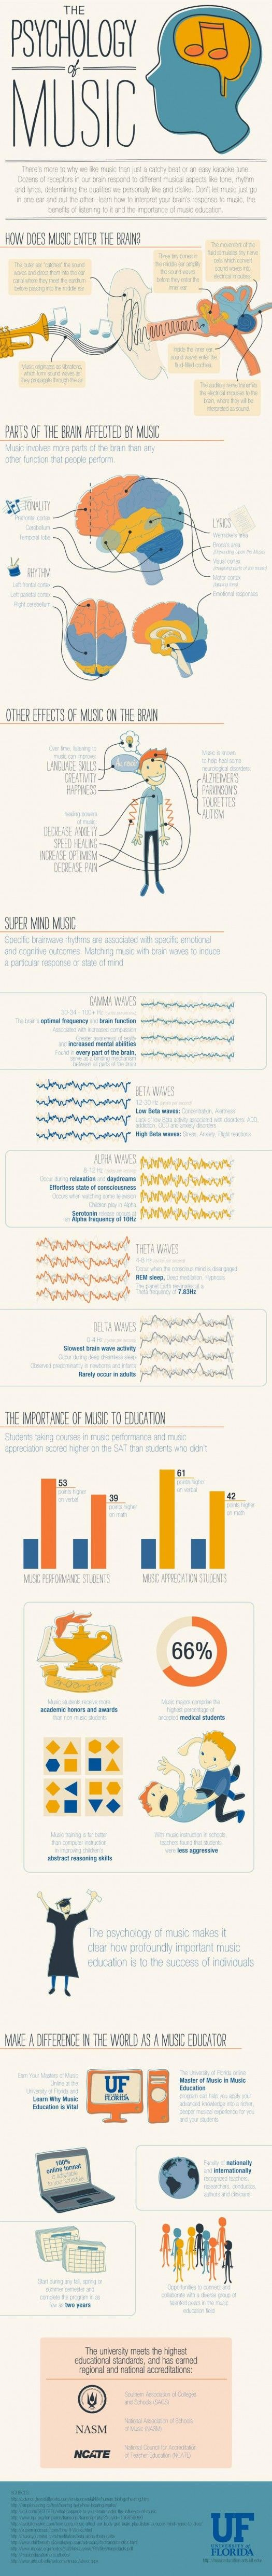 The Psychology of Music. Ignore the second half. Sorry, but music isn't a miracle worker. Listening to it won't instantly raise your grades.<<< yeah but it can help and music is a miracle